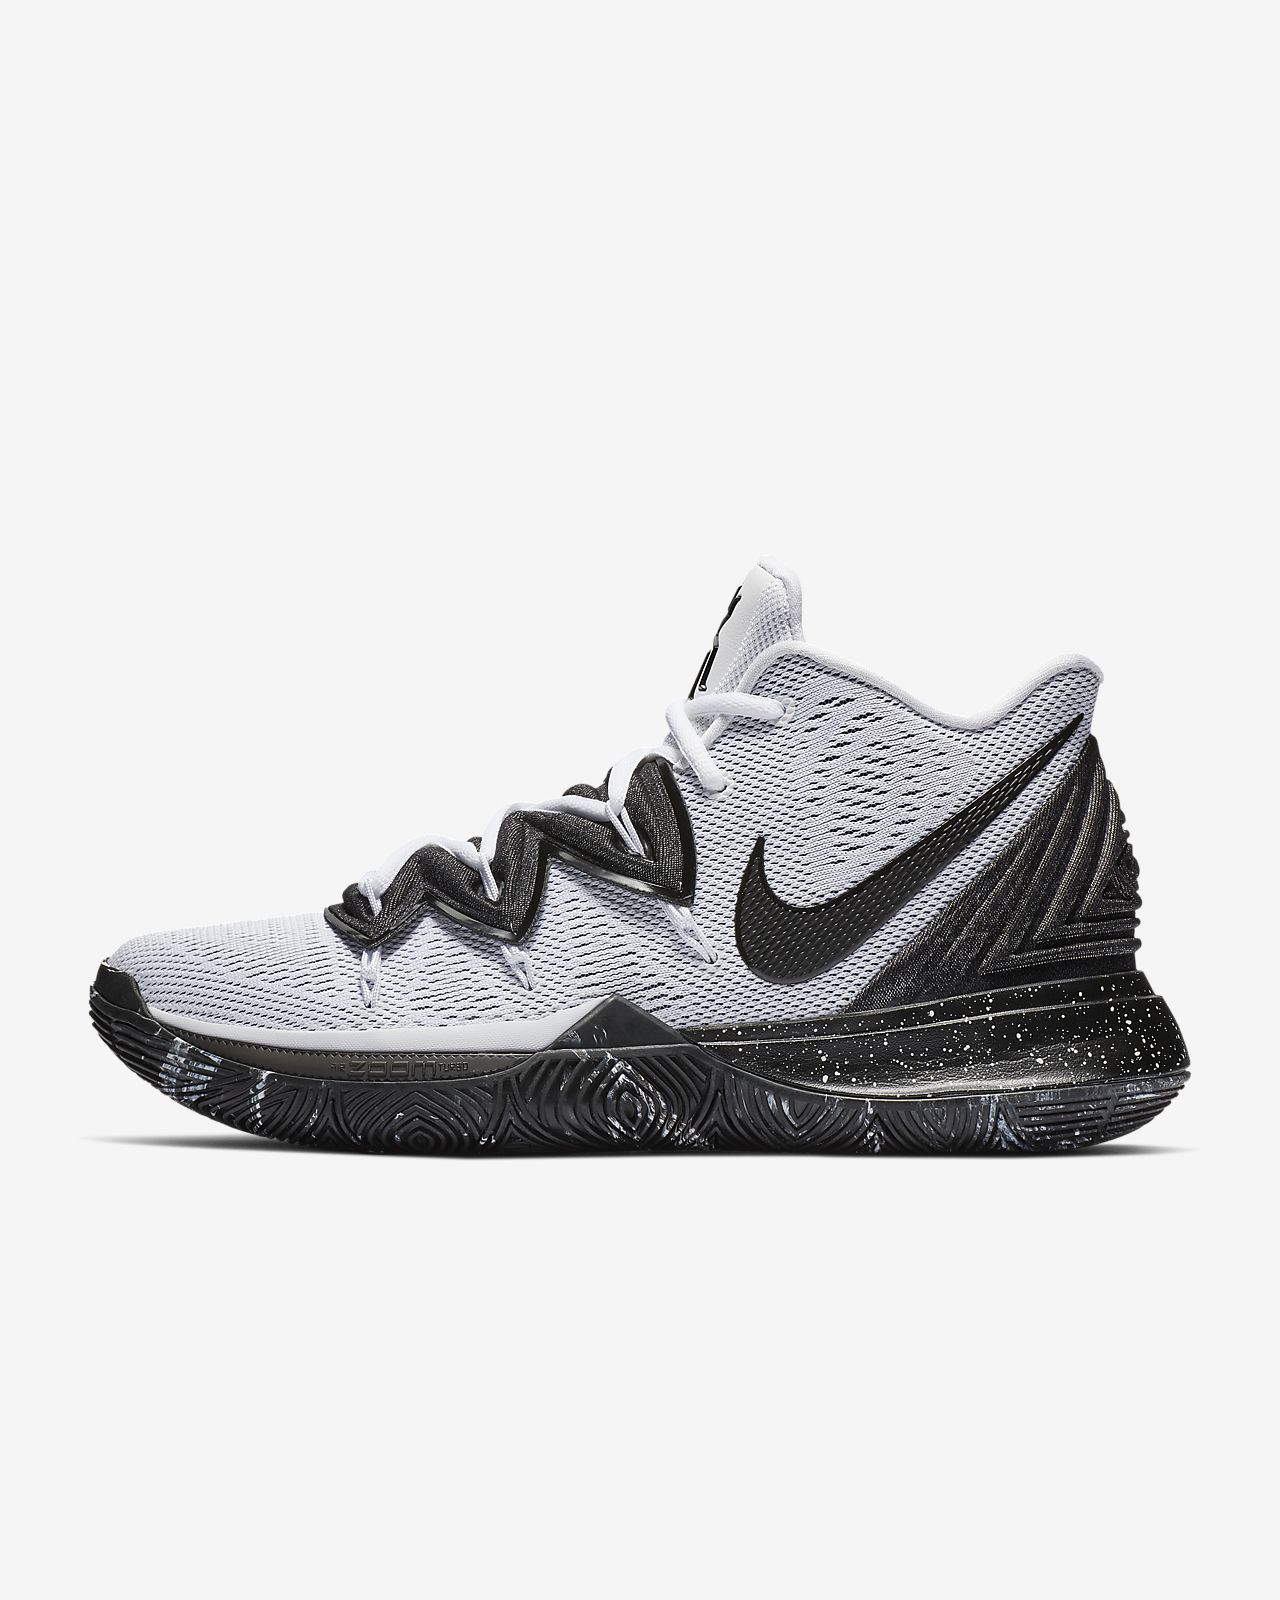 separation shoes f4115 c2856 Low Resolution Chaussure Kyrie 5 Chaussure Kyrie 5